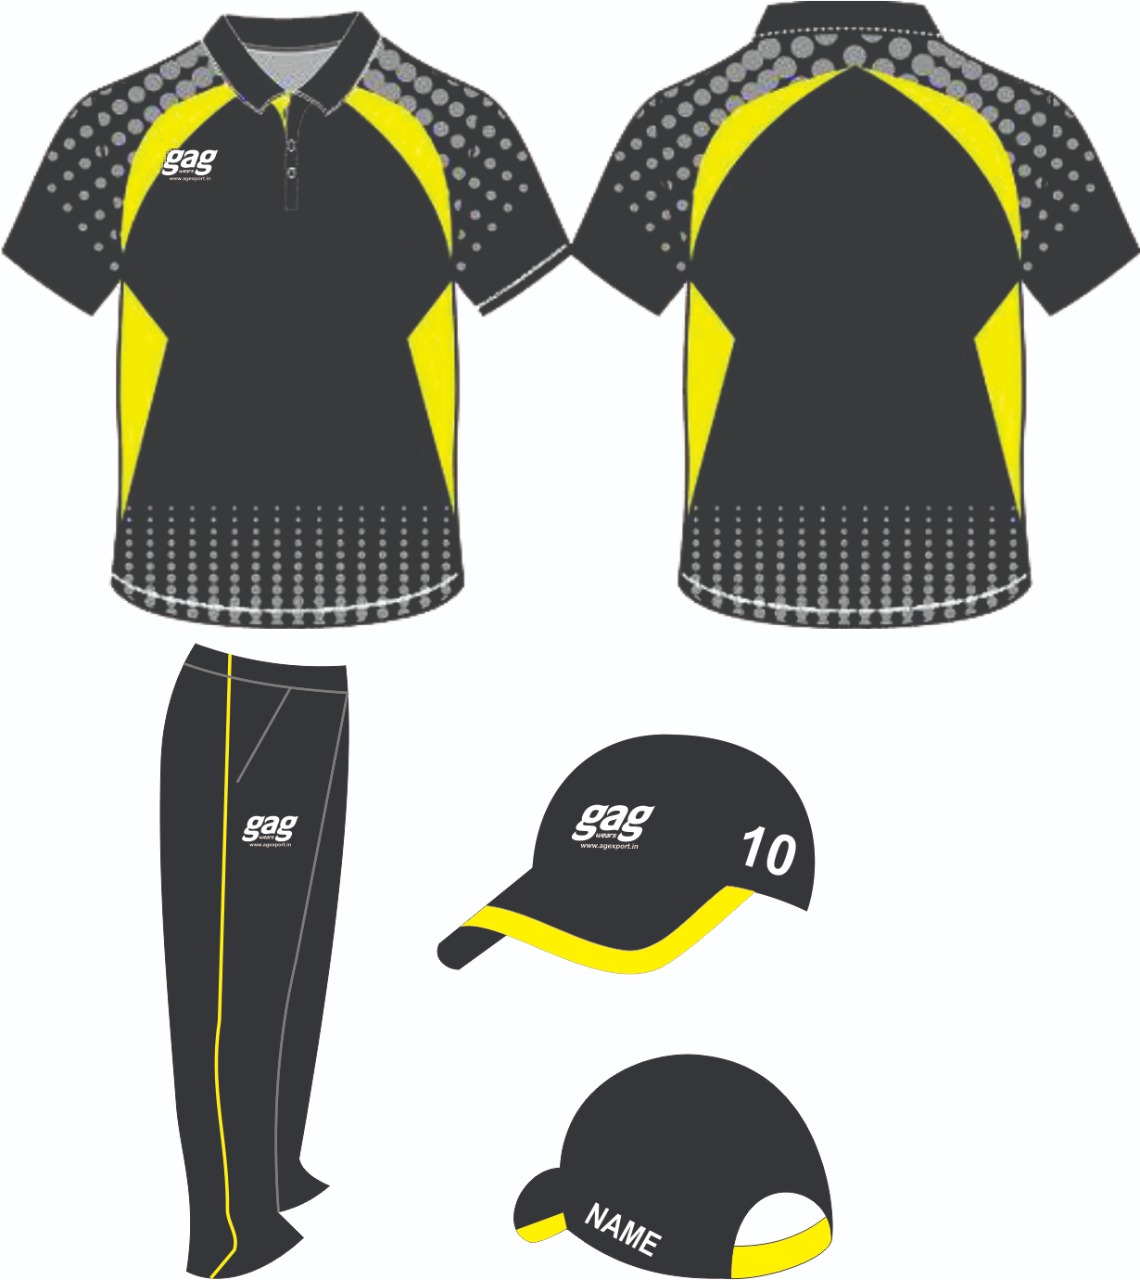 Cricket Uniform Manufacturers and Exporters in Slovakia